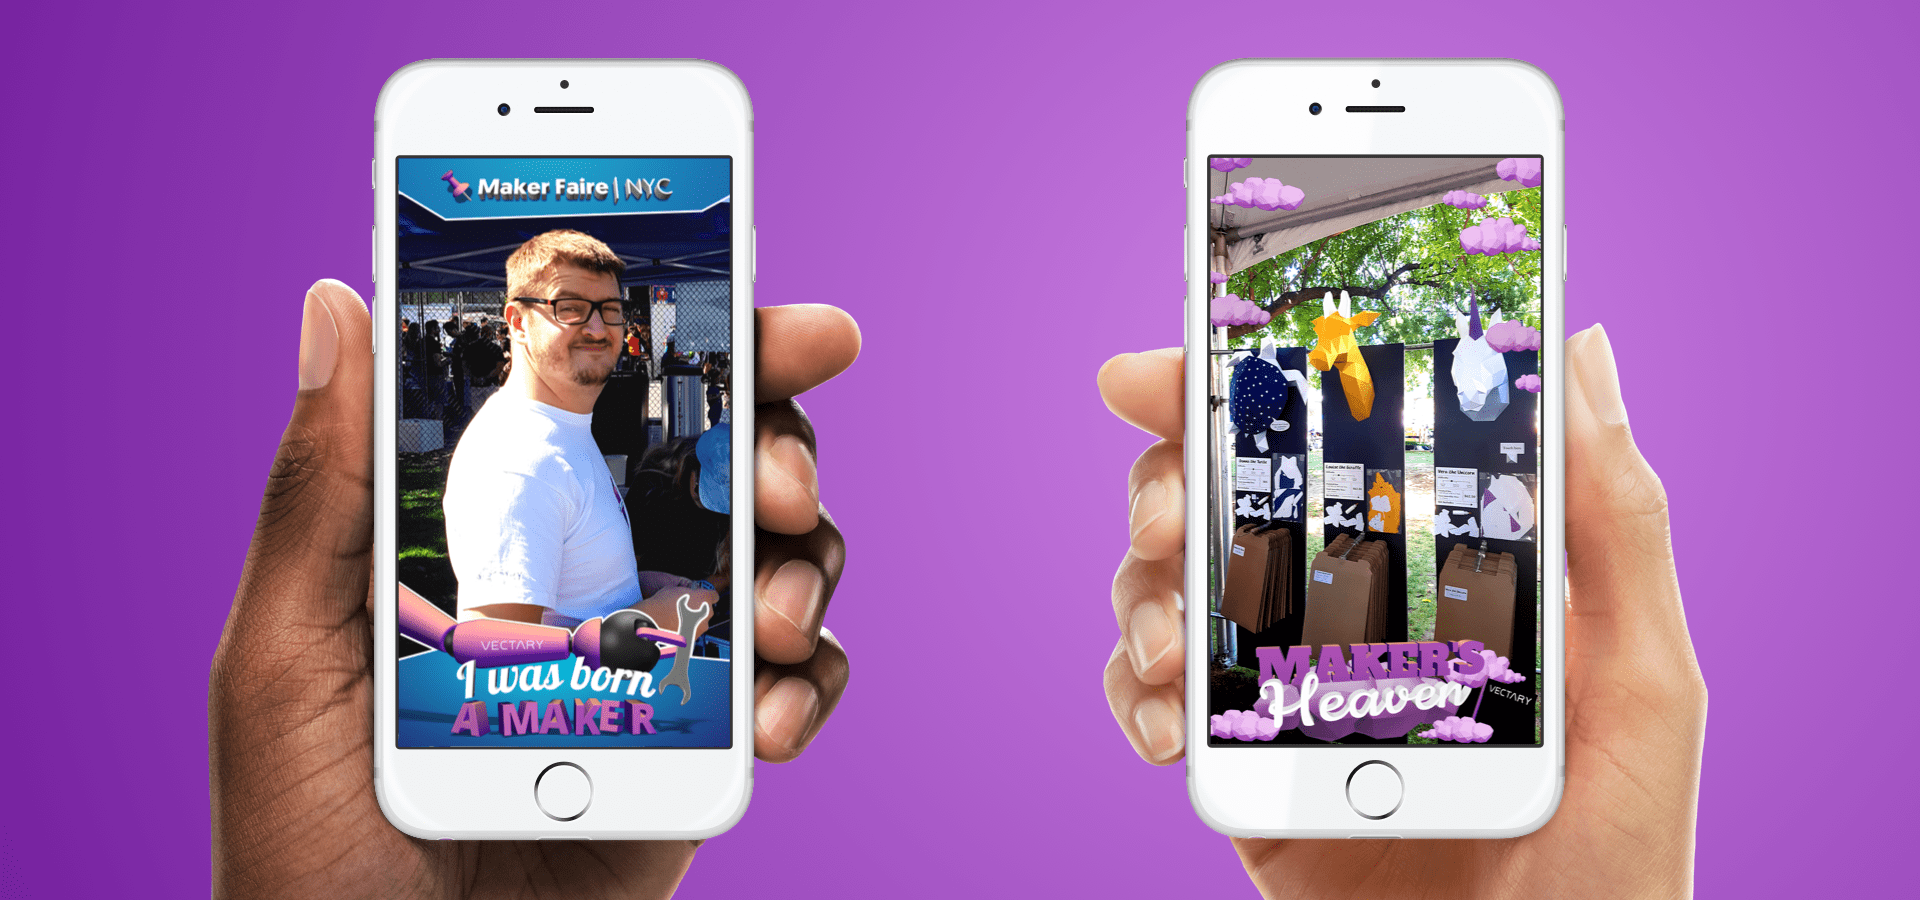 How Snapchat's Geofilters got us to the World Maker Faire